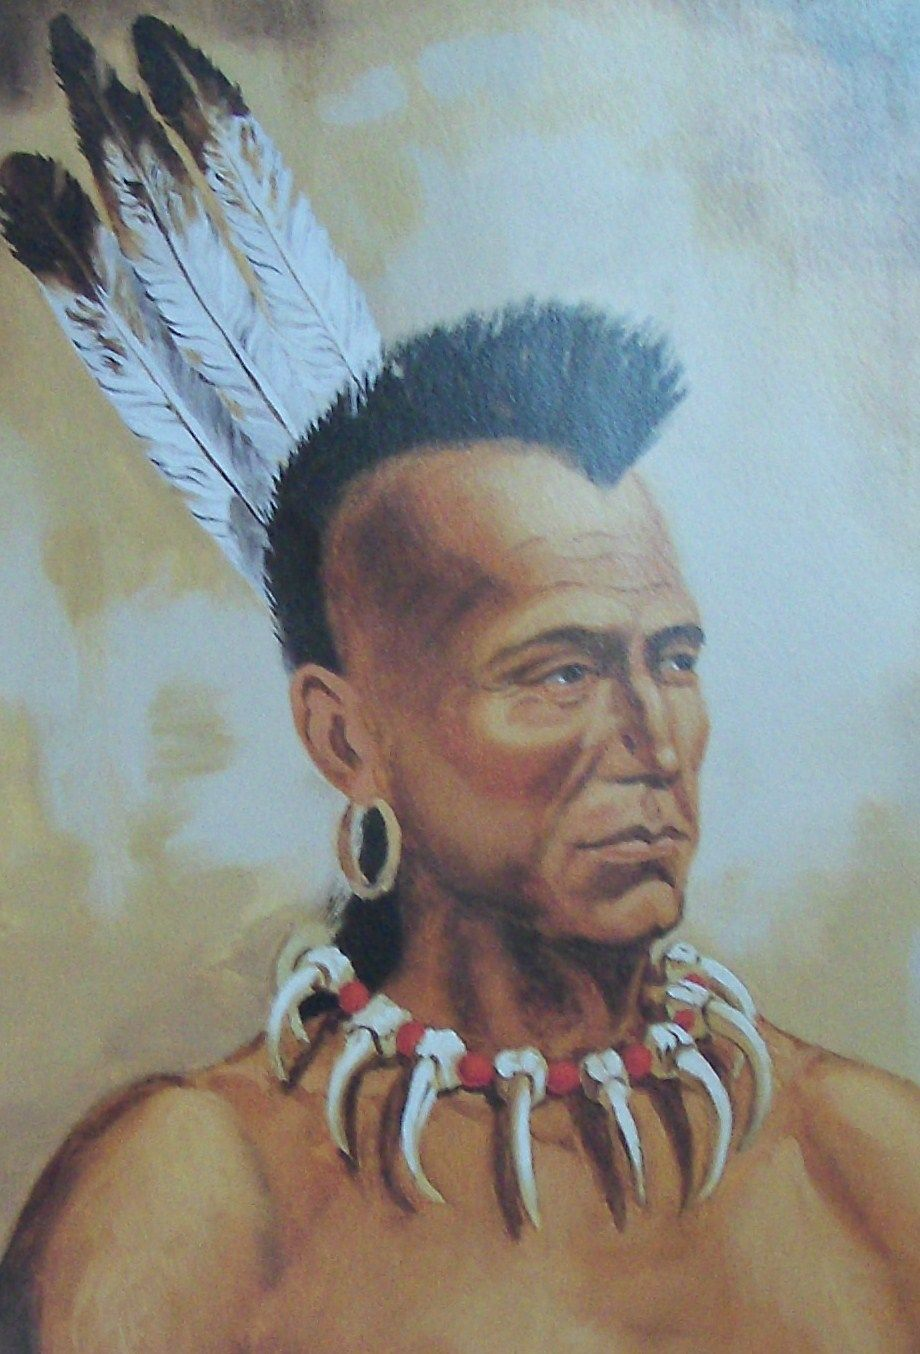 retro: a mohawk is a mohawk pink or grey | native americans